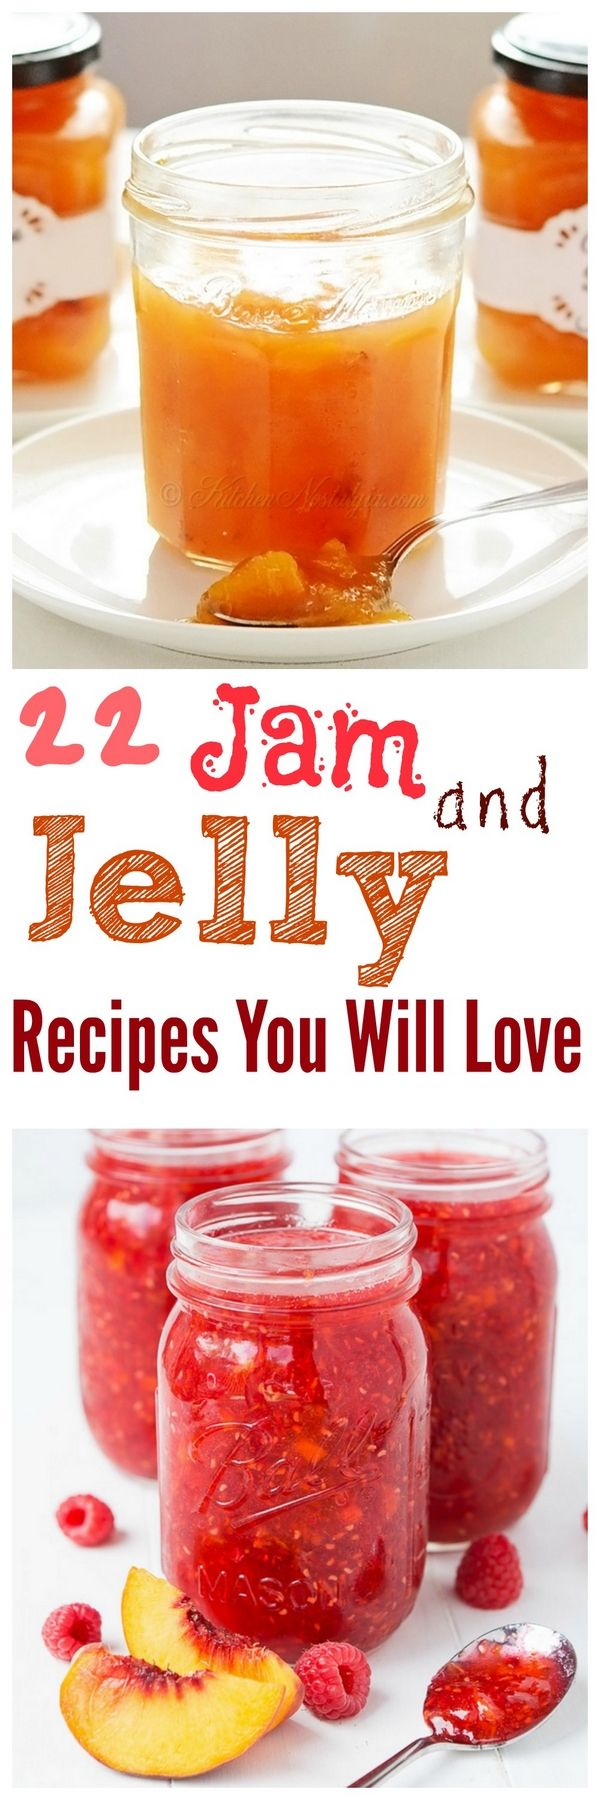 22 Jam and Jelly Recipes You Will Love